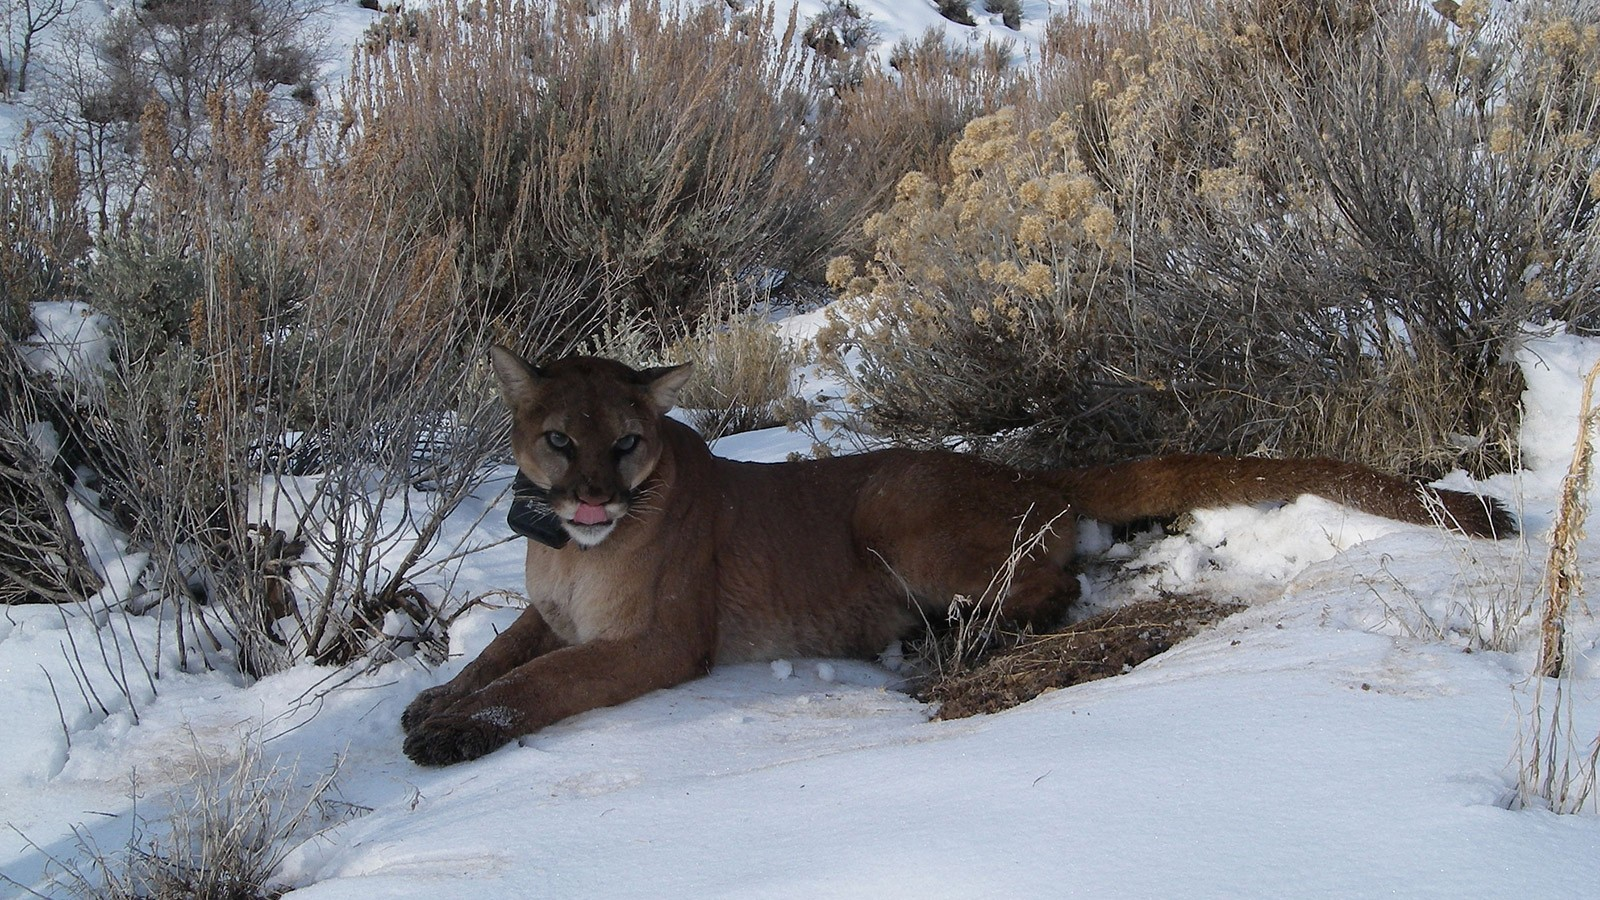 Mountain lion in the wild.